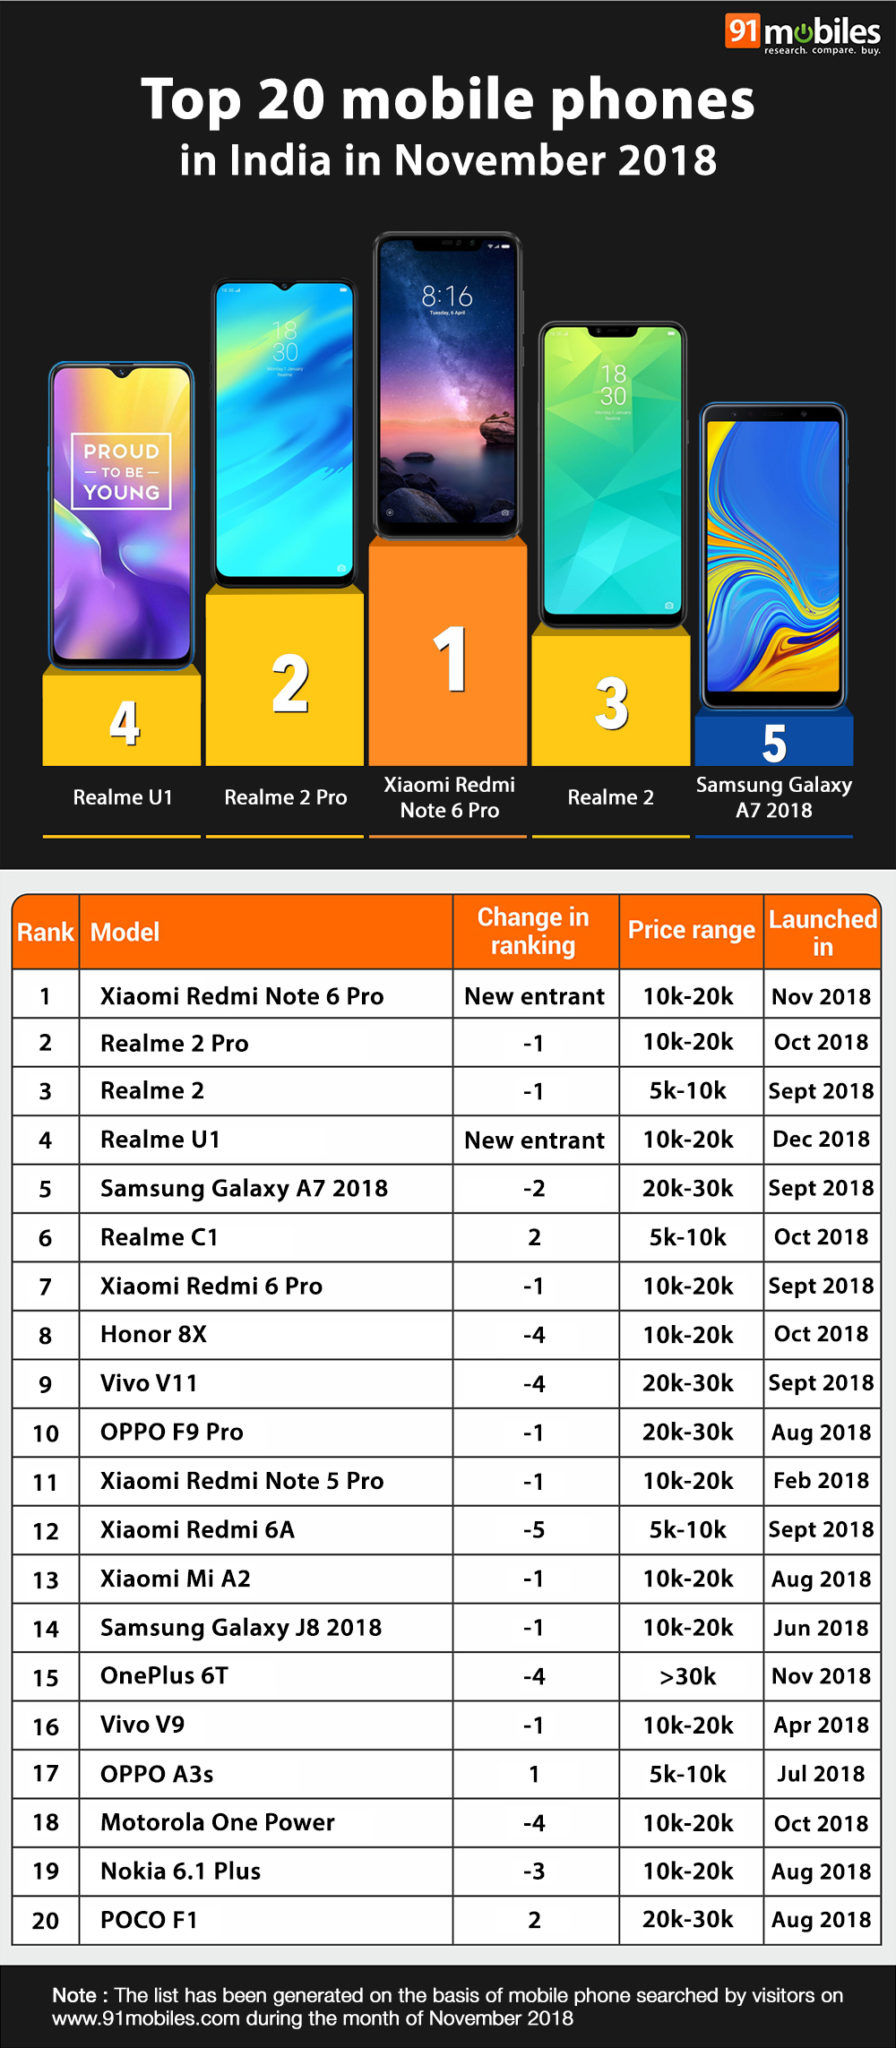 Top 20 mobile phones in India in November 2018 - 91mobiles